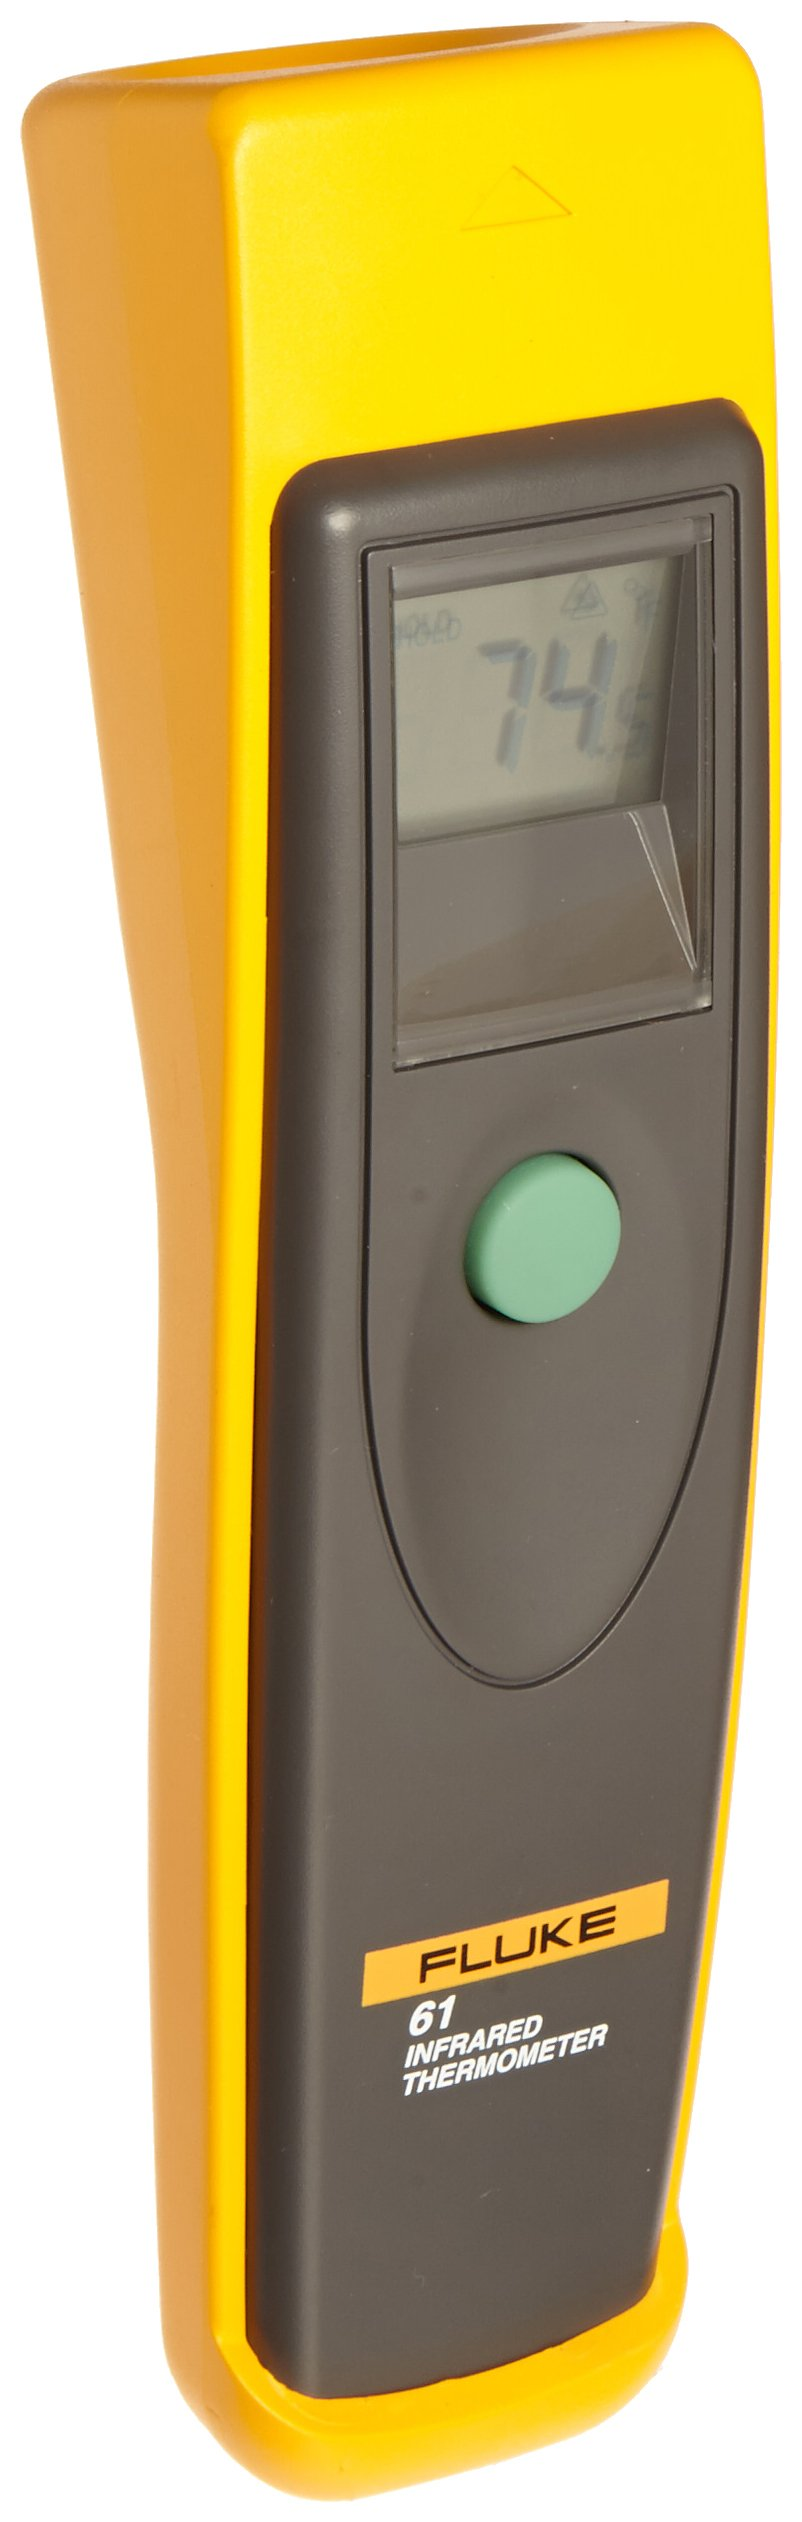 Fluke 61 Handheld Infrared Thermometer, 9V Alkaline battery, 0 to 525 Degree F Range